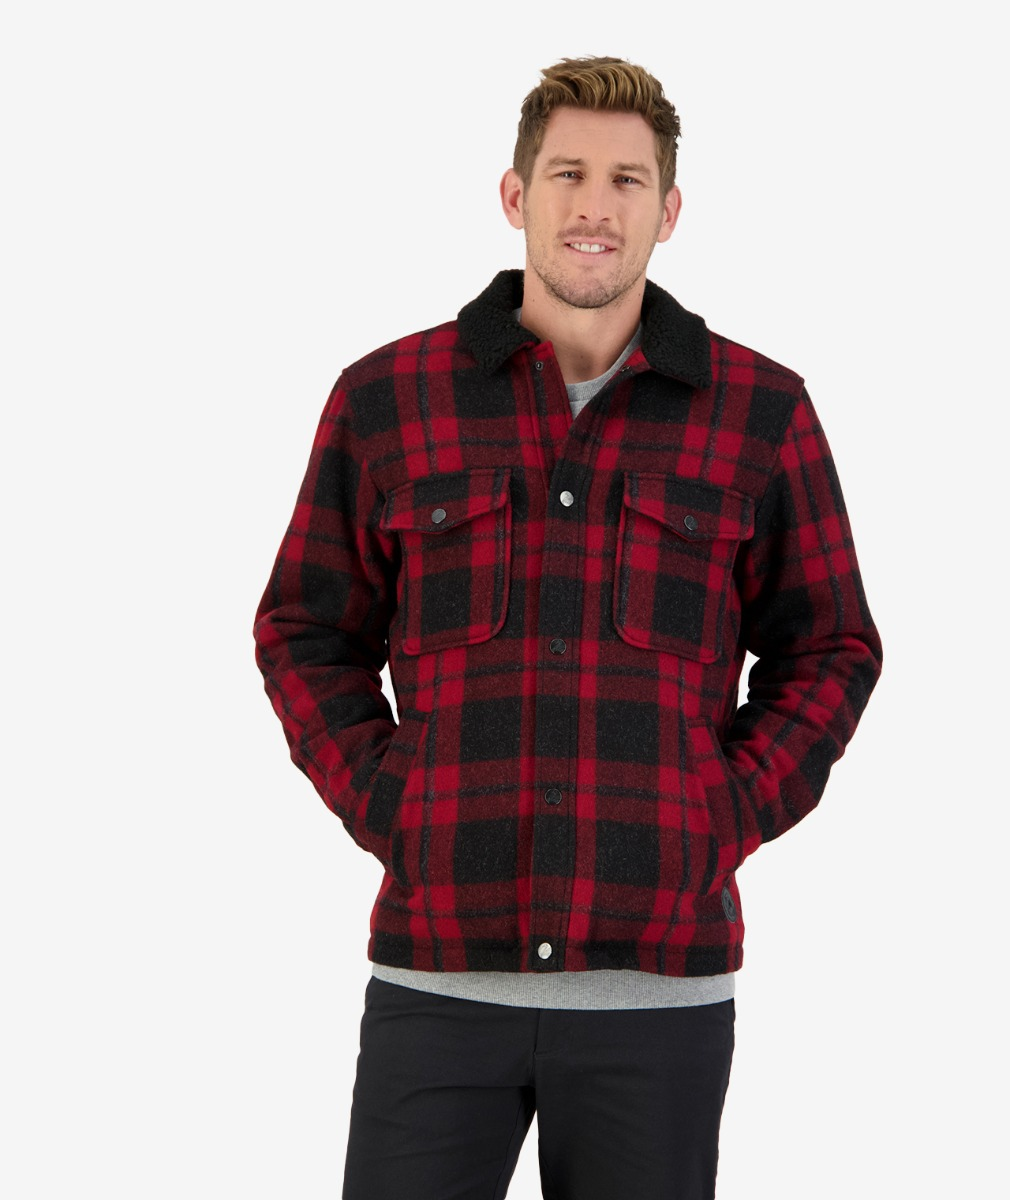 Swanndri Men's Kaituna Sherpa Lined Jacket in Merlot Check